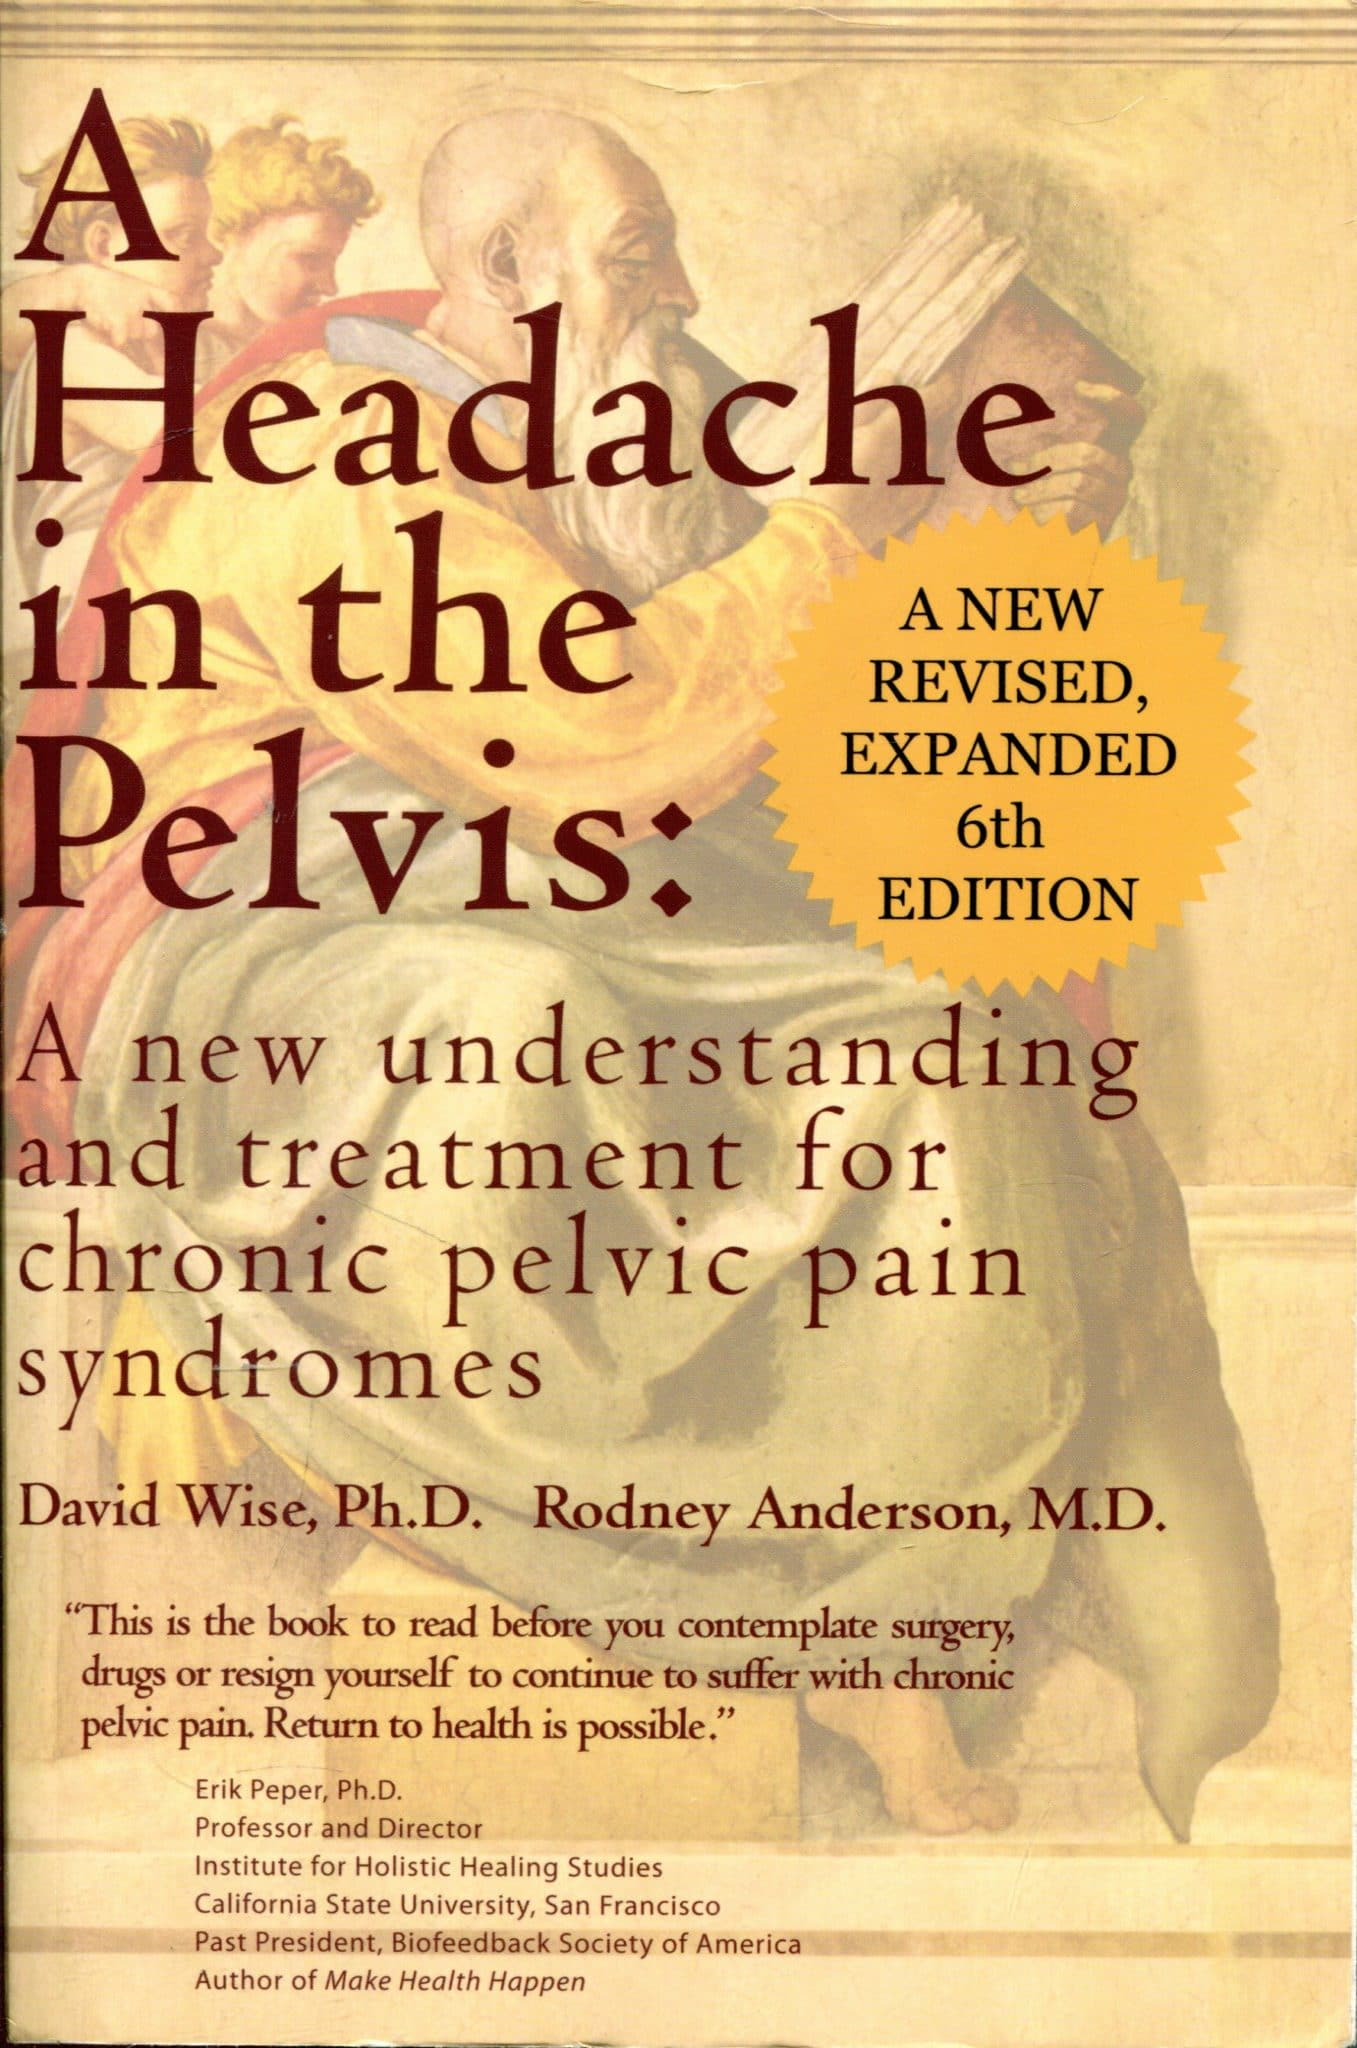 A Headache in the Pelvis David Wise, Rodney Anderson